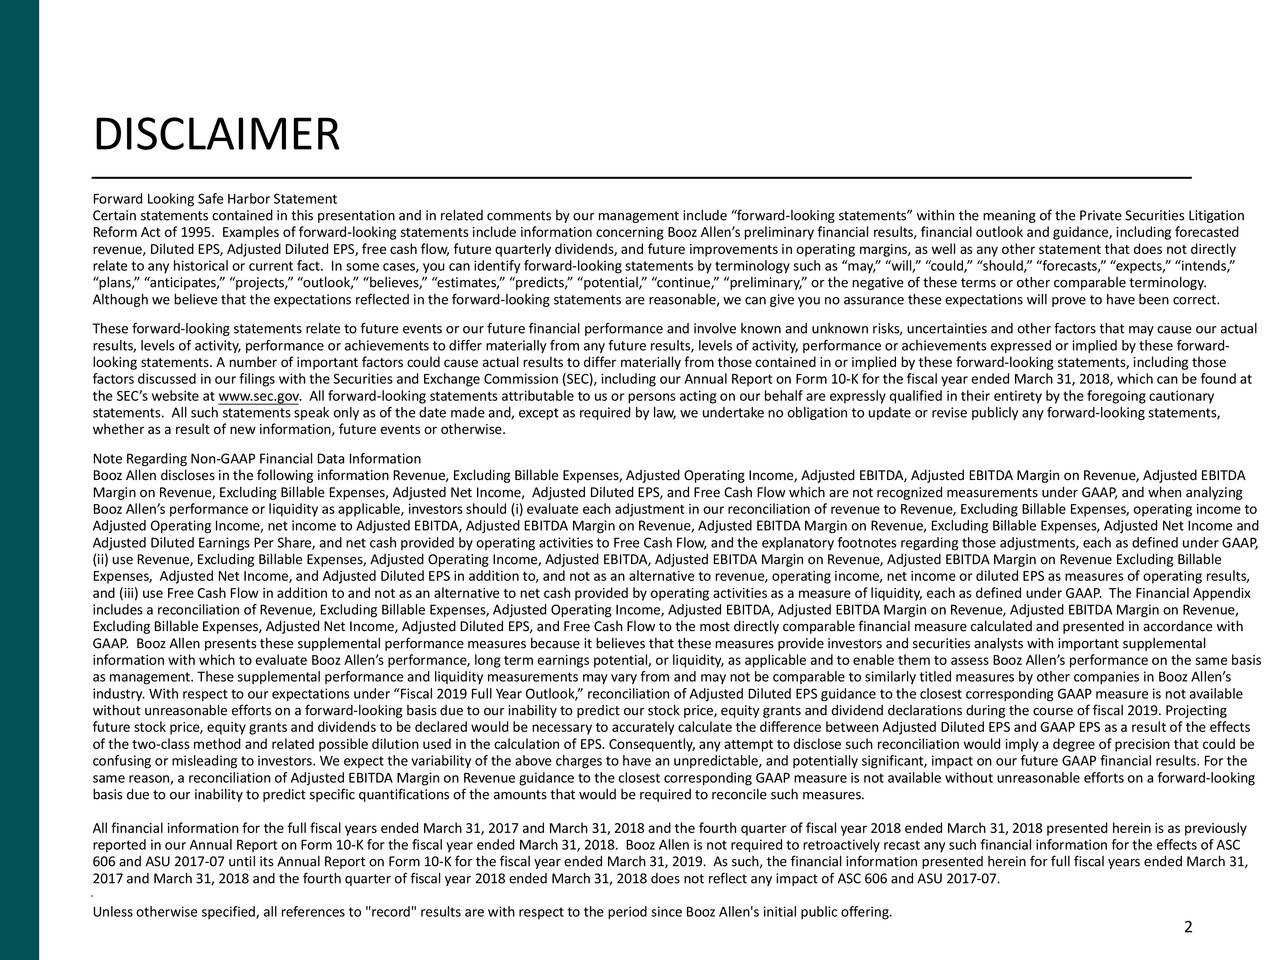 """Forward Looking Safe Harbor Statement Certain statements contained in this presentation and in related comments by our management include """"forward-looking statements"""" within the meaning of the Private Securities Litigation Reform Act of 1995. Examples of forward-looking statements include information concerning Booz Allen's preliminary financial results, financial outlook and guidance, including forecasted revenue, Diluted EPS, Adjusted Diluted EPS, free cash flow, future quarterly dividends, and future improvements in operating margins, as well as any other statement that does not directly relate to any historical or current fact. In some cases, you can identify forward-looking statements by terminology such as """"may,"""" """"will,"""" """"could,"""" """"should,"""" """"forecasts,"""" """"expects,"""" """"intends,"""" """"plans,"""" """"anticipates,"""" """"projects,"""" """"outlook,"""" """"believes,"""" """"estimates,"""" """"predicts,"""" """"potential,"""" """"continue,"""" """"preliminary,"""" or the negative of these terms or other comparable terminology. Although we believe that the expectations reflected in the forward-looking statements are reasonable, we can give you no assurance these expectations will prove to have been correct. These forward-looking statements relate to future events or our future financial performance and involve known and unknown risks, uncertainties and other factors that may cause our actual results, levels of activity, performance or achievements to differ materially from any future results, levels of activity, performance or achievements expressed or implied by these forward- looking statements. A number of important factors could cause actual results to differ materially from those contained in or implied by these forward-looking statements, including those factors discussed in our filings with the Securities and Exchange Commission (SEC), including our Annual Report on Form 10-K for the fiscal year ended March 31, 2018, which can be found at the SEC's website at www.sec.gov. All forward-looking statements attributable to us o"""